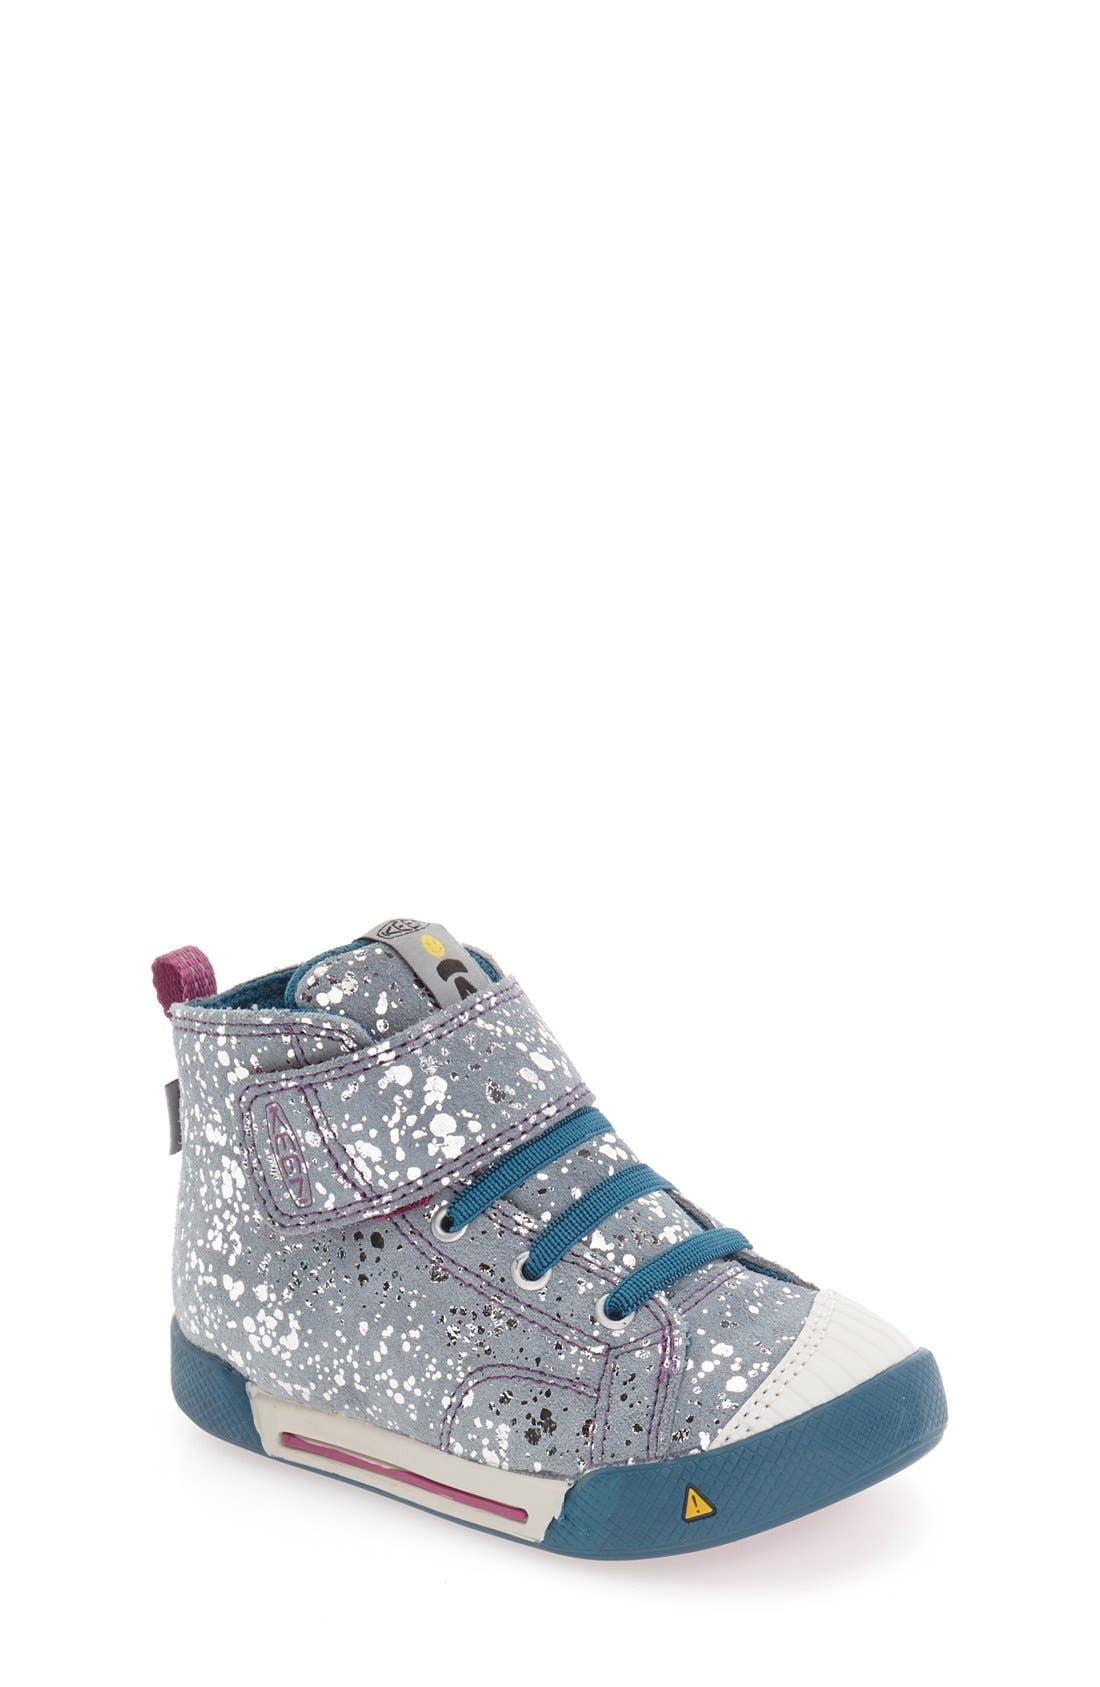 'Encanto Scout' High Top Sneaker,                             Main thumbnail 1, color,                             Silver Splatter/ Purple